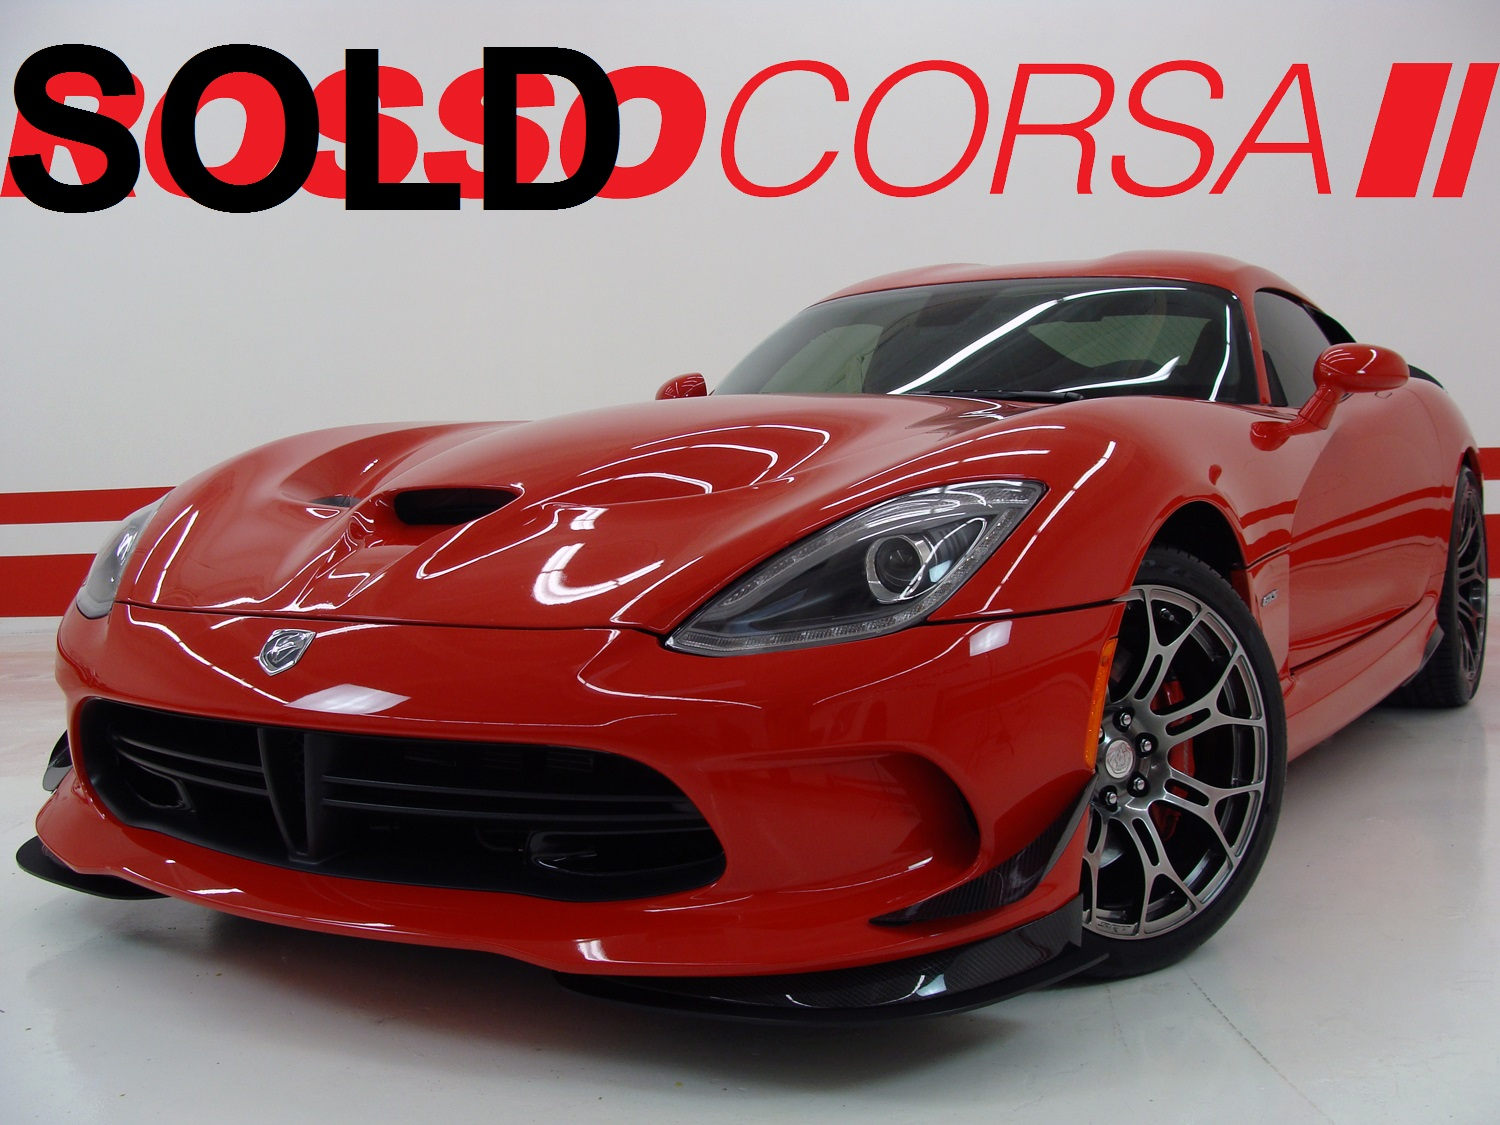 2013 Dodge SRT Viper GTS Coupe ($130K MSRP)